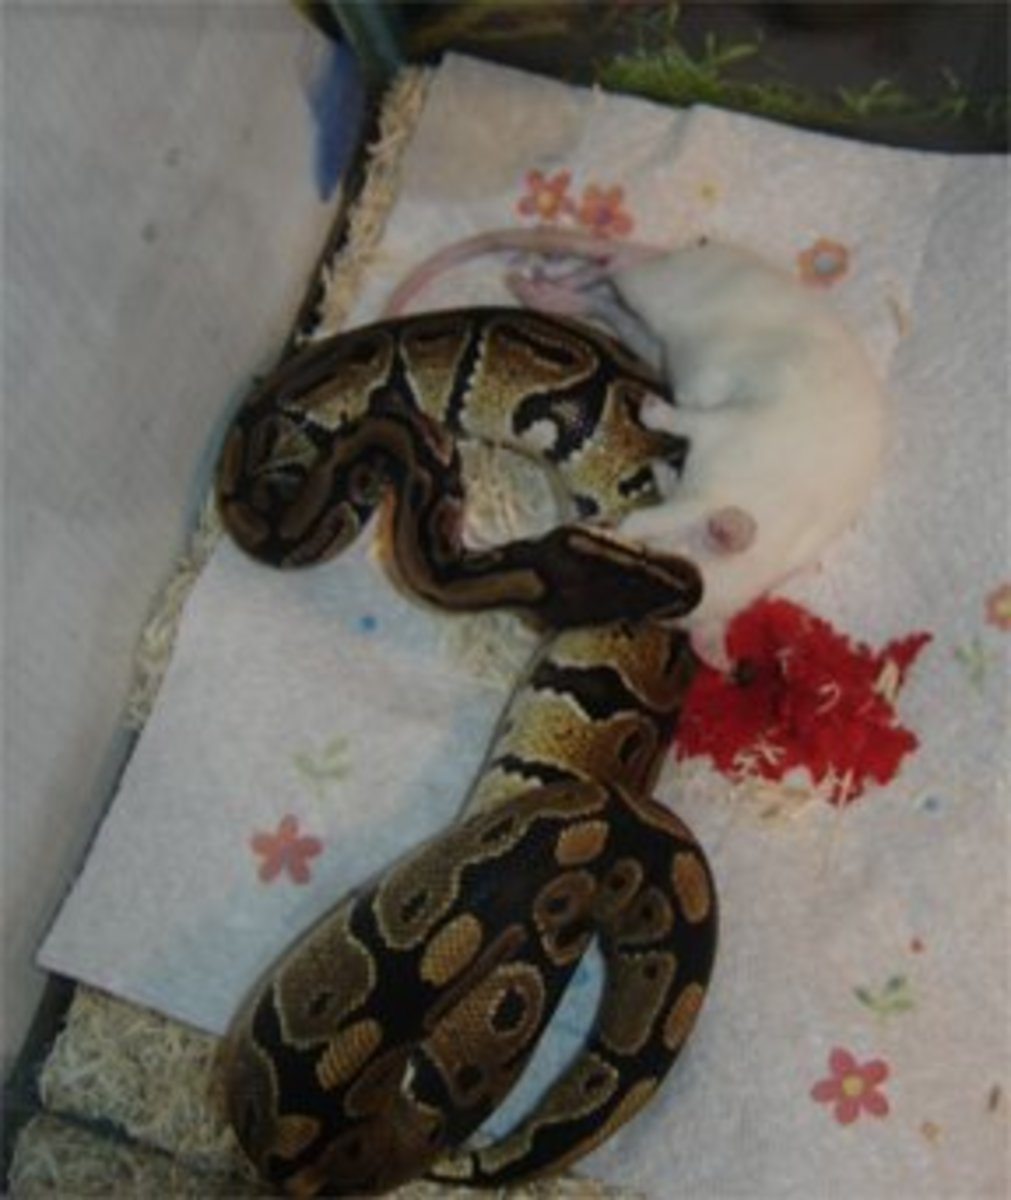 Initial bite was in a back artery, luckily the snake wasn't bit.